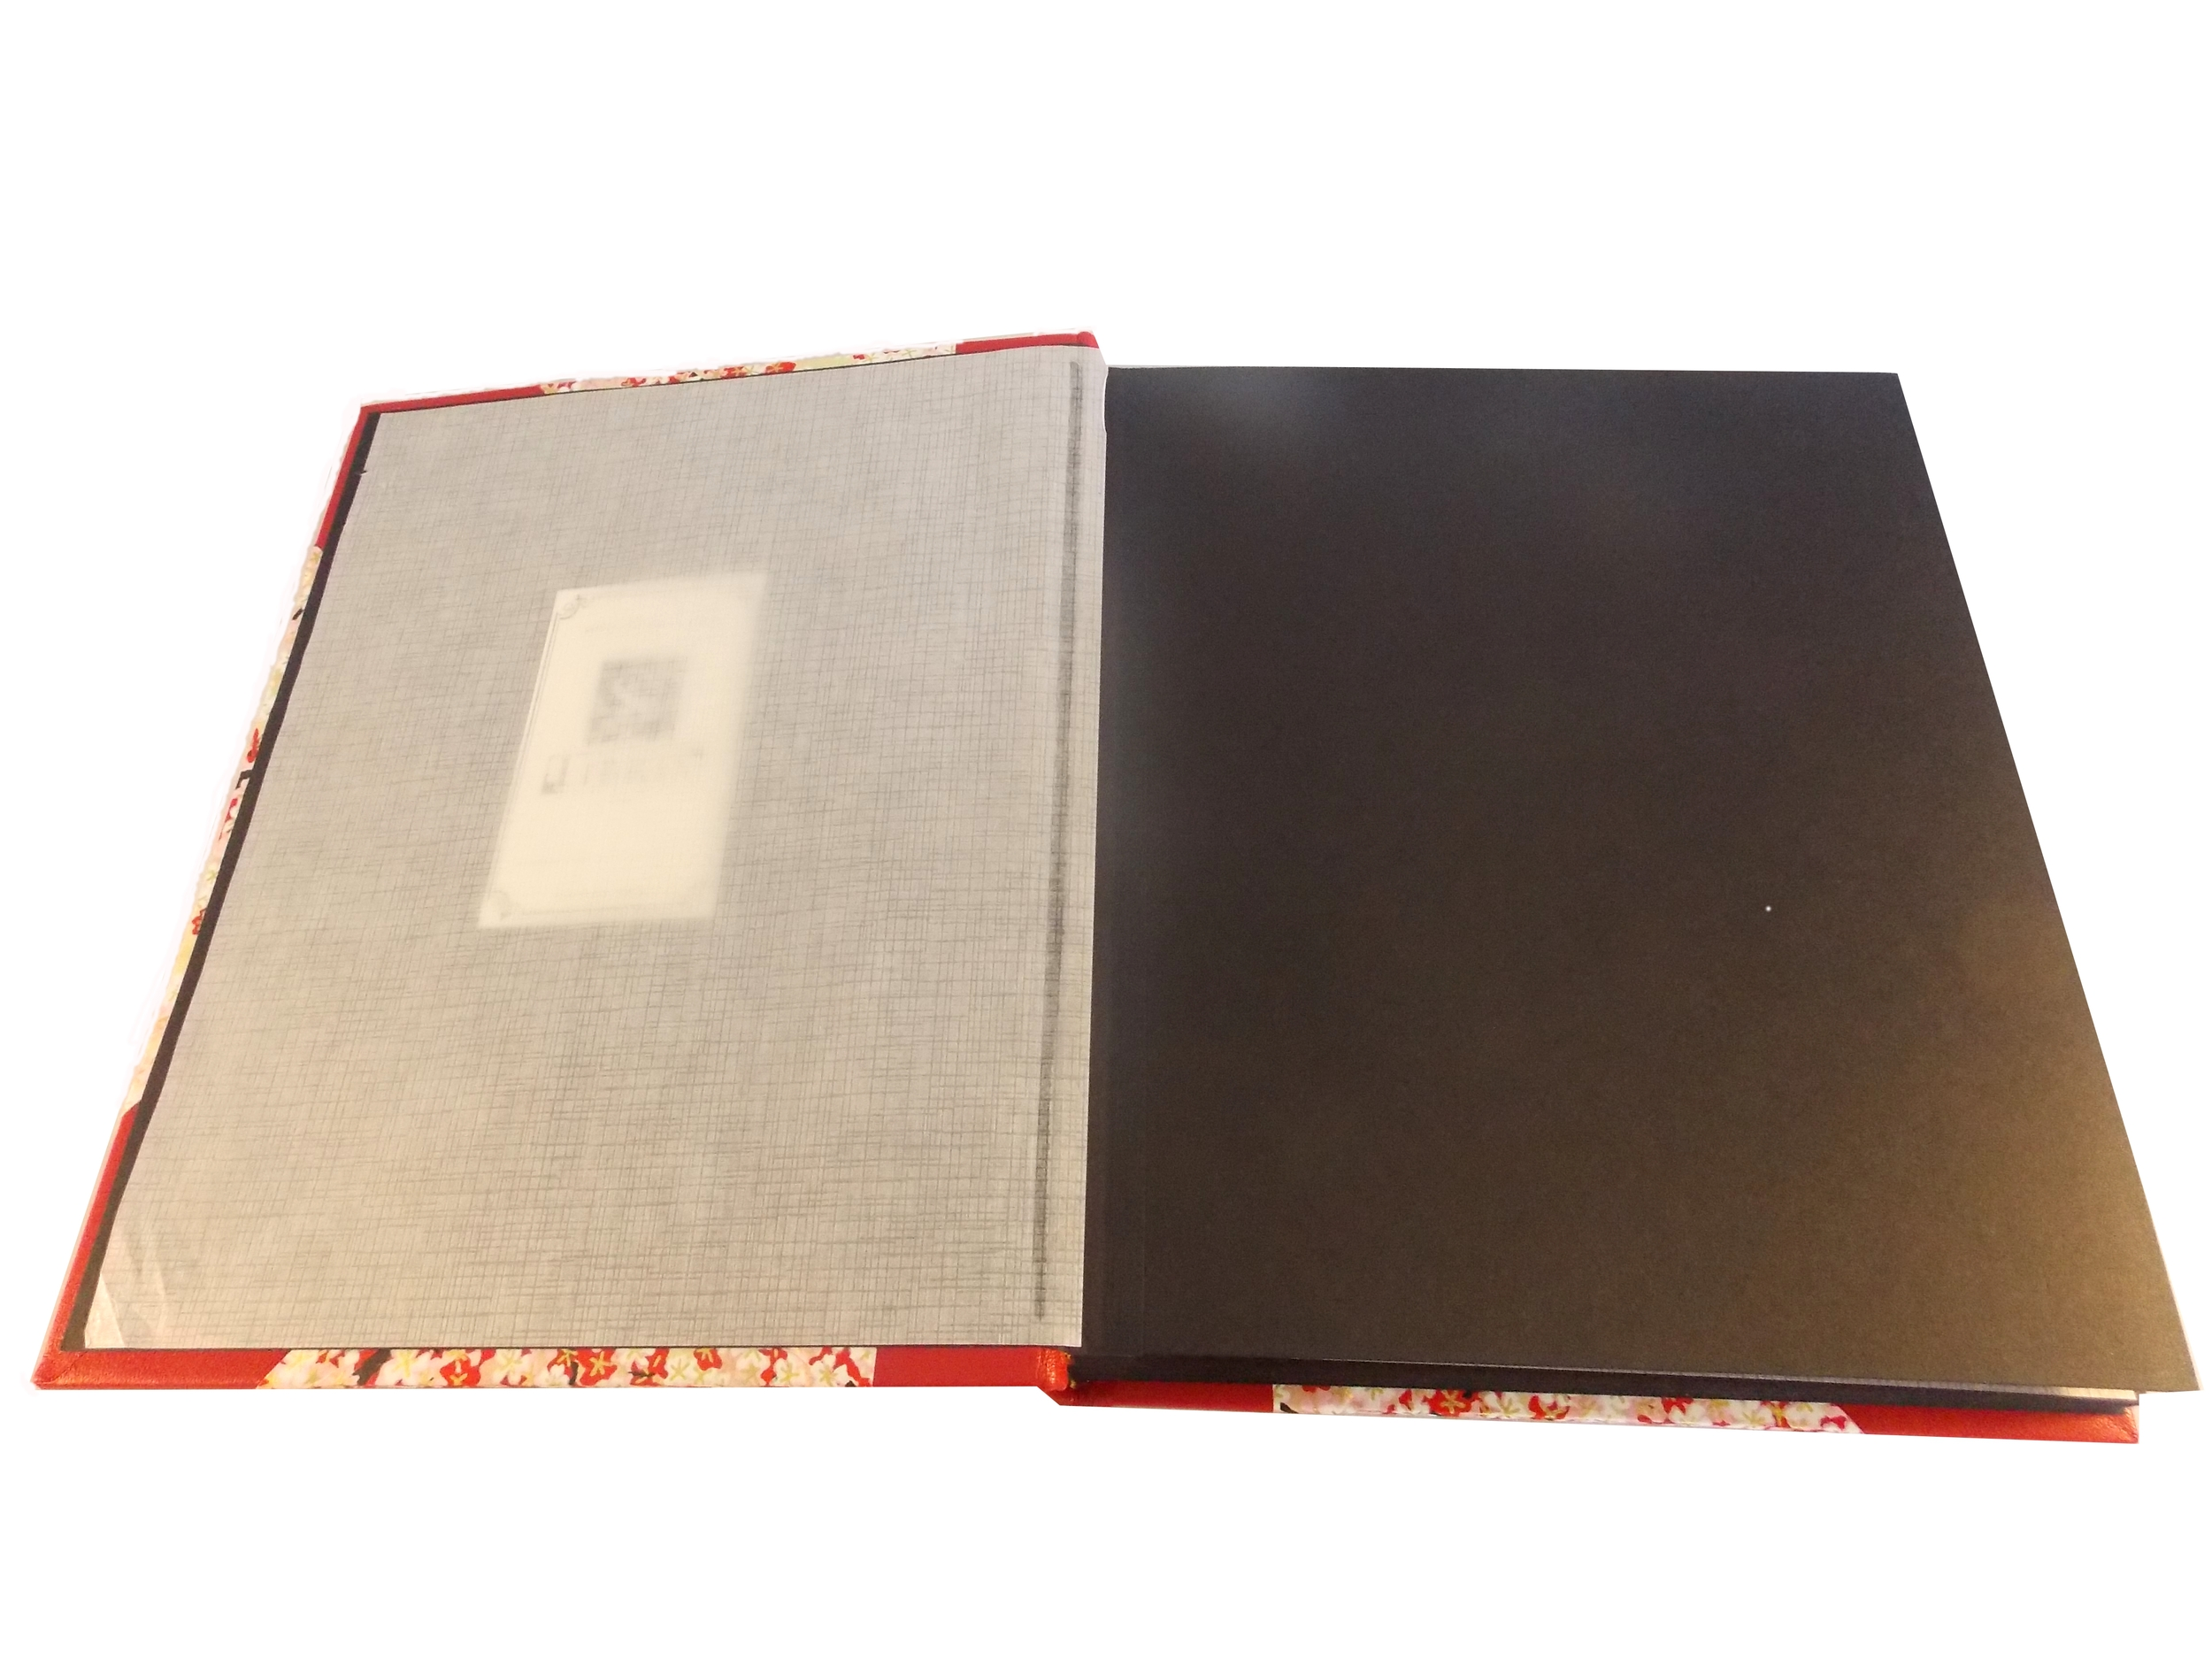 Inside View of Portrait sized album